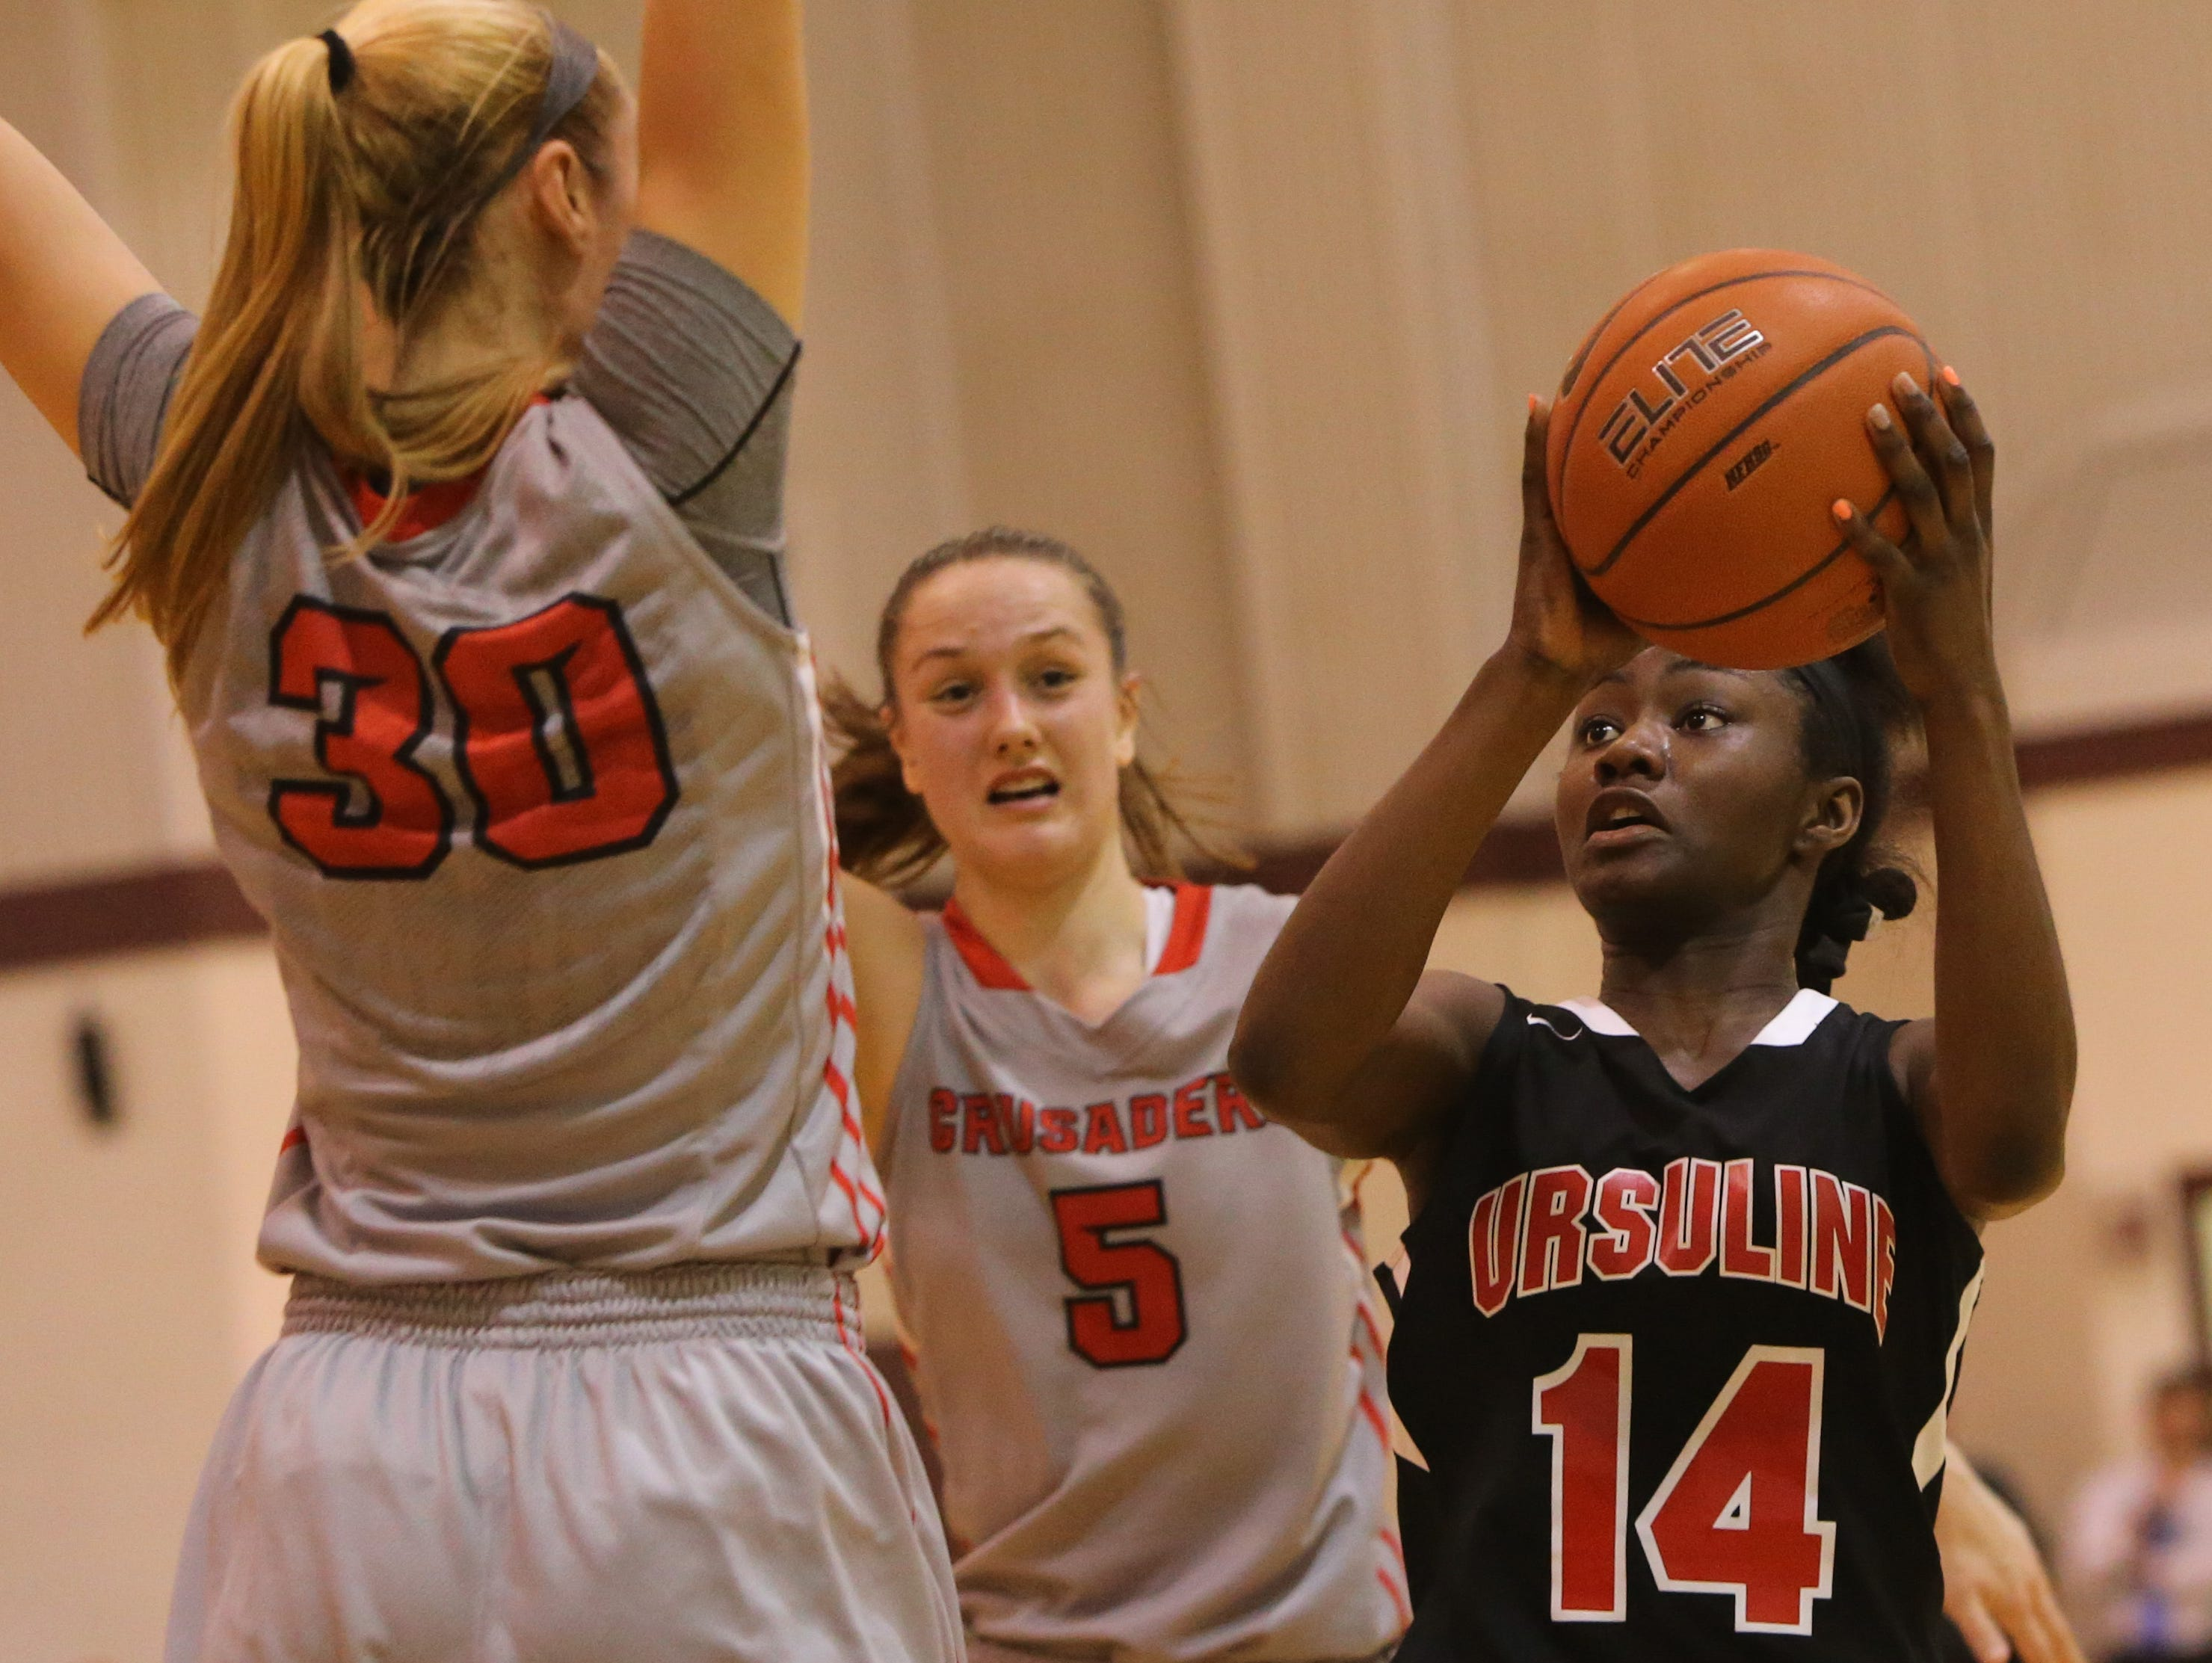 Ursuline forward Kryshell Gordy is surrounded by Long Island Lutheran defenders Aislinn Flynn, No. 30, and Sarah Mortensen in the second quarter. Ursuline falls to Long Island Lutheran 52-55 in the semifinals of the Saint Francis Healthcare Cup of the Diamond State Classic at St. Elizabeth High School Tuesday.